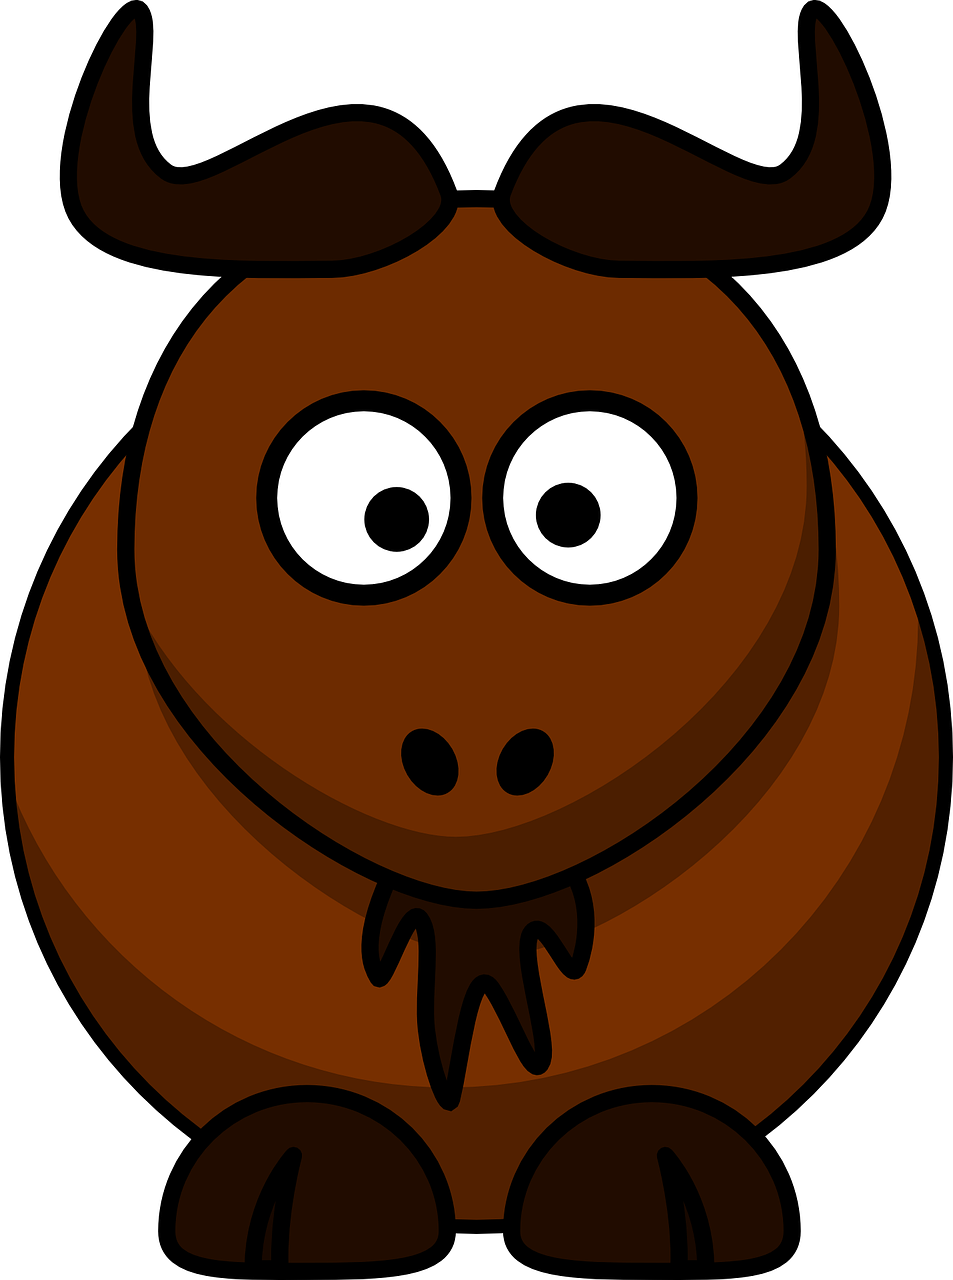 clipart freeuse stock Buffalo clipart face. Free image on pixabay